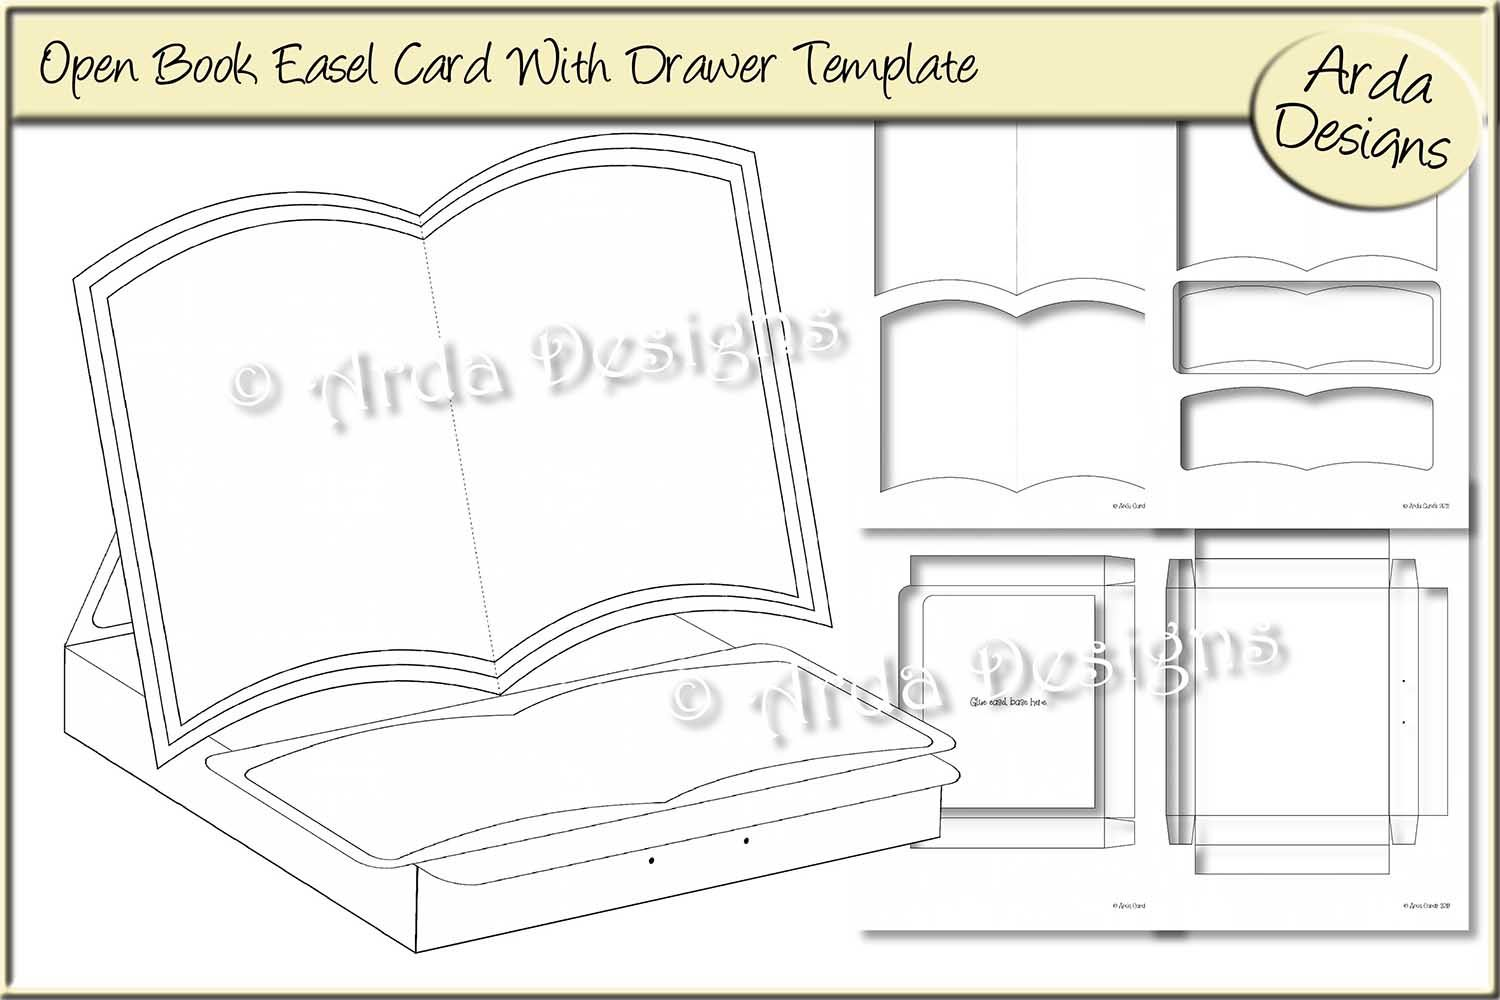 Open Book Easel Card Template Graphic By Arda Designs Creative Fabrica Easel Cards Card Template Open Book